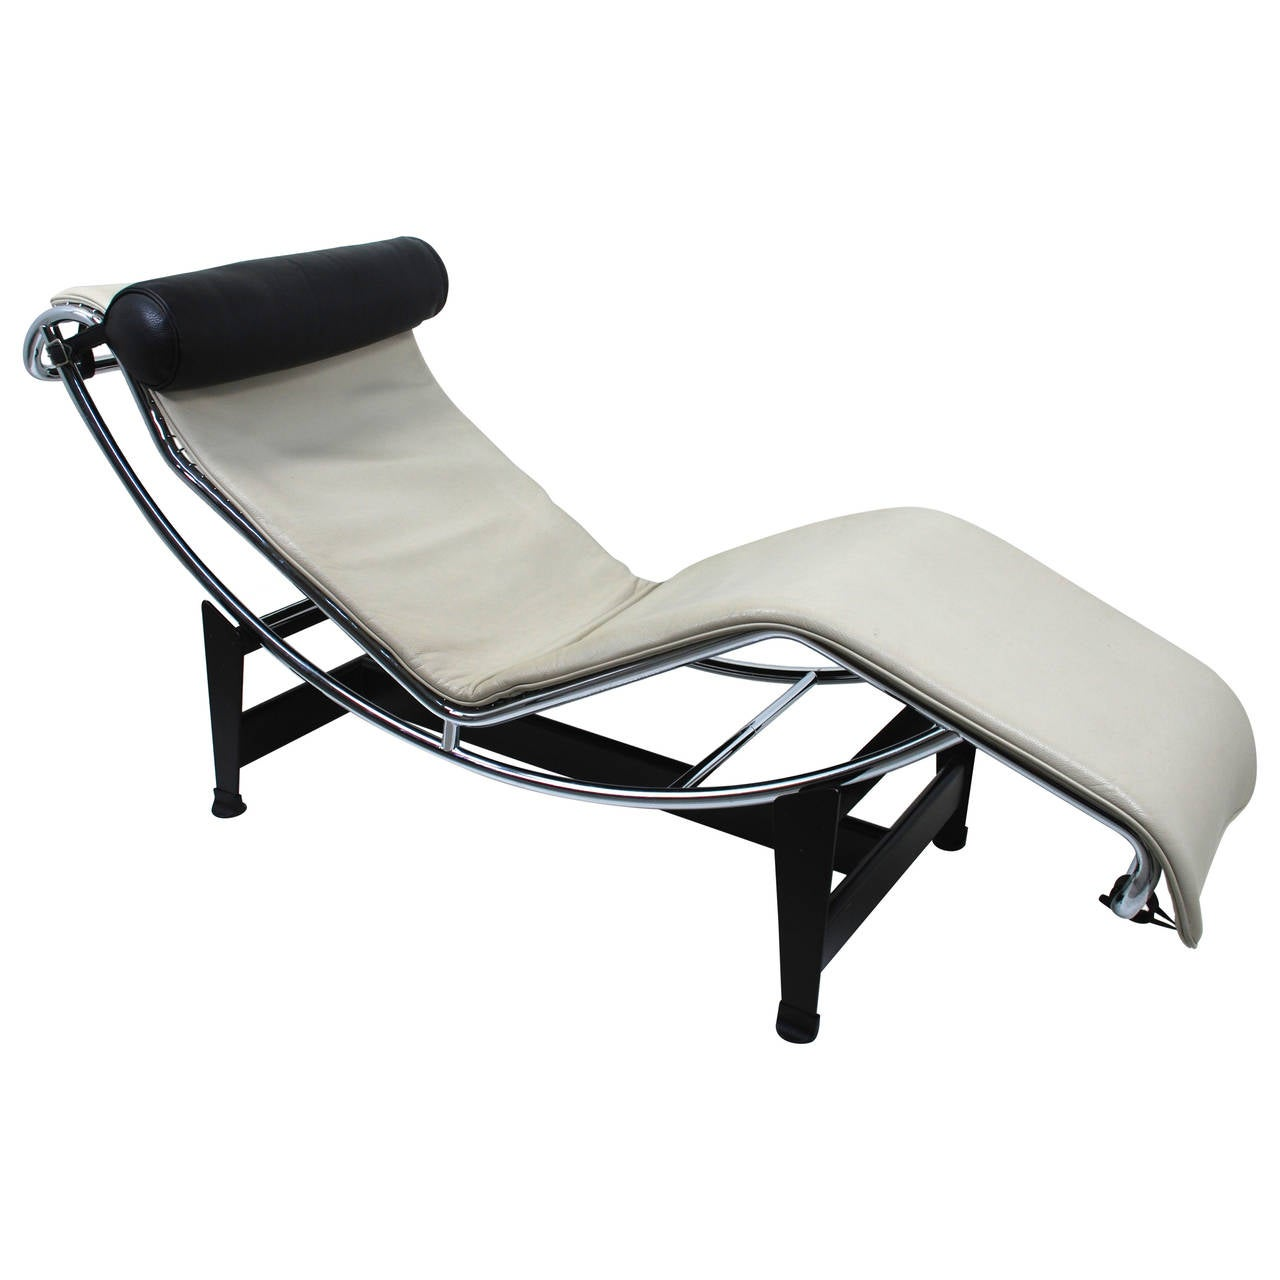 Le corbusier 39 lc 4 39 chaise longue 1928 at 1stdibs for Chaise longue lecorbusier